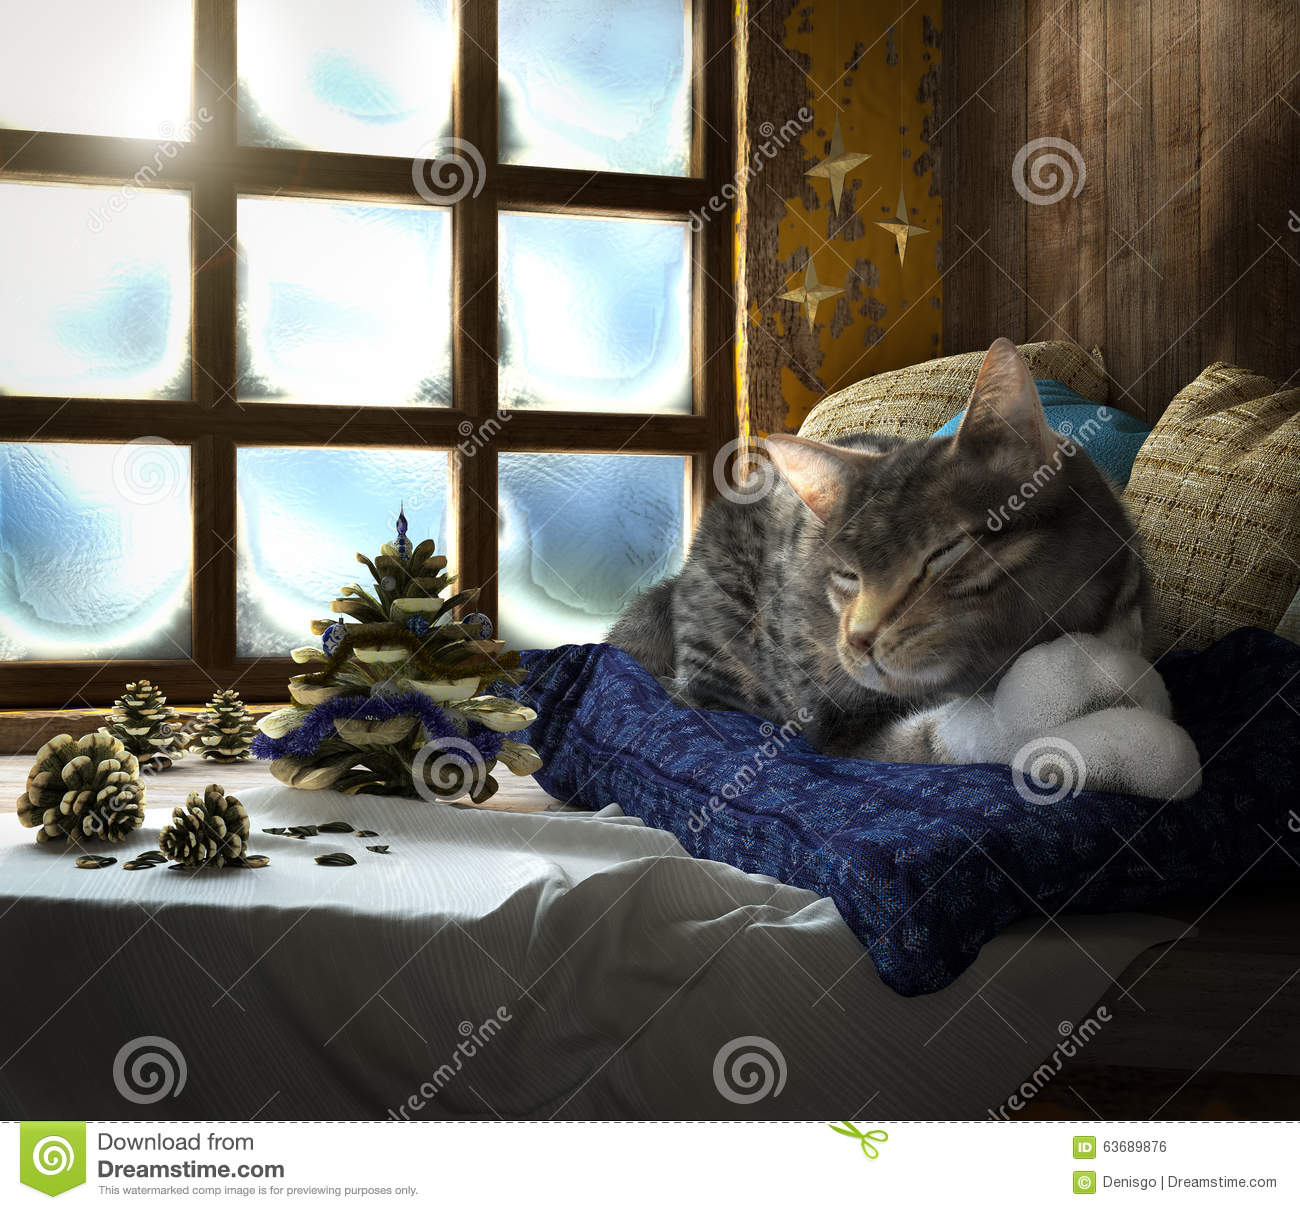 Sleeping cat on winter window background concept for Sleeping with window open in winter